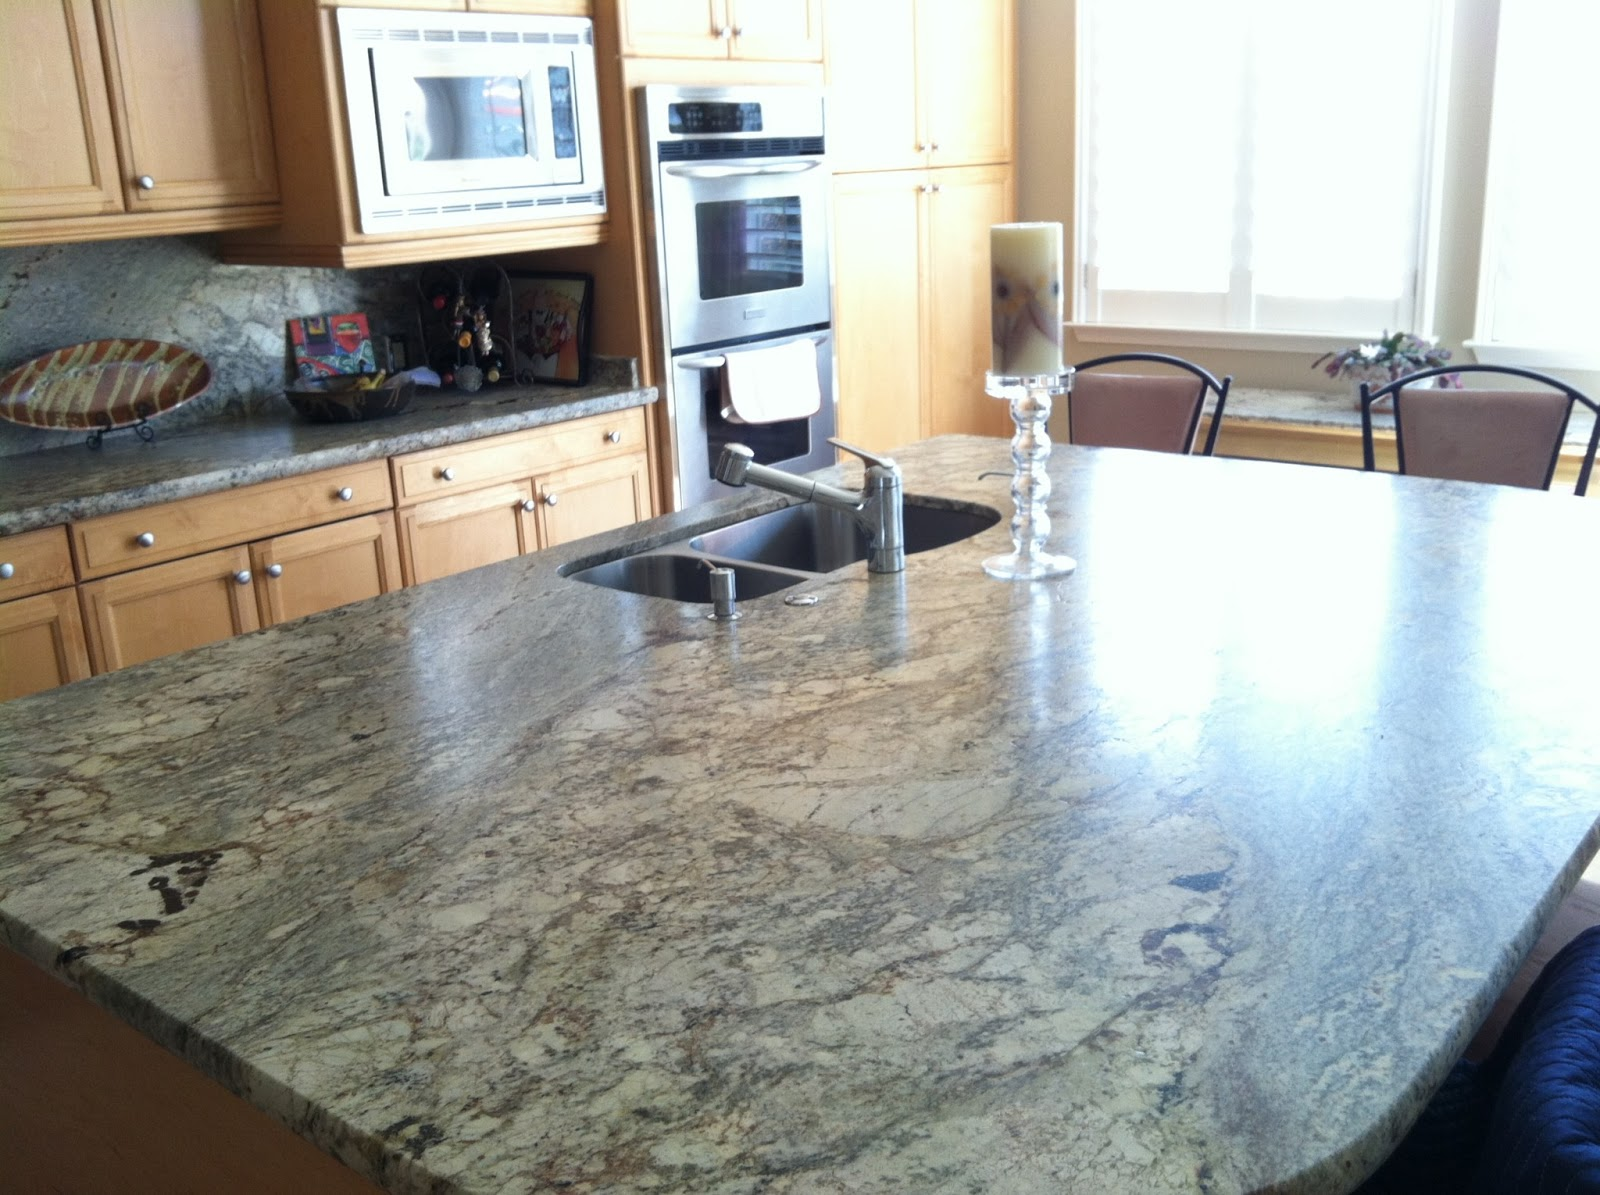 Natural Way To Clean Granite Countertops Natural Stone Source Granite Vs Tile Countertops